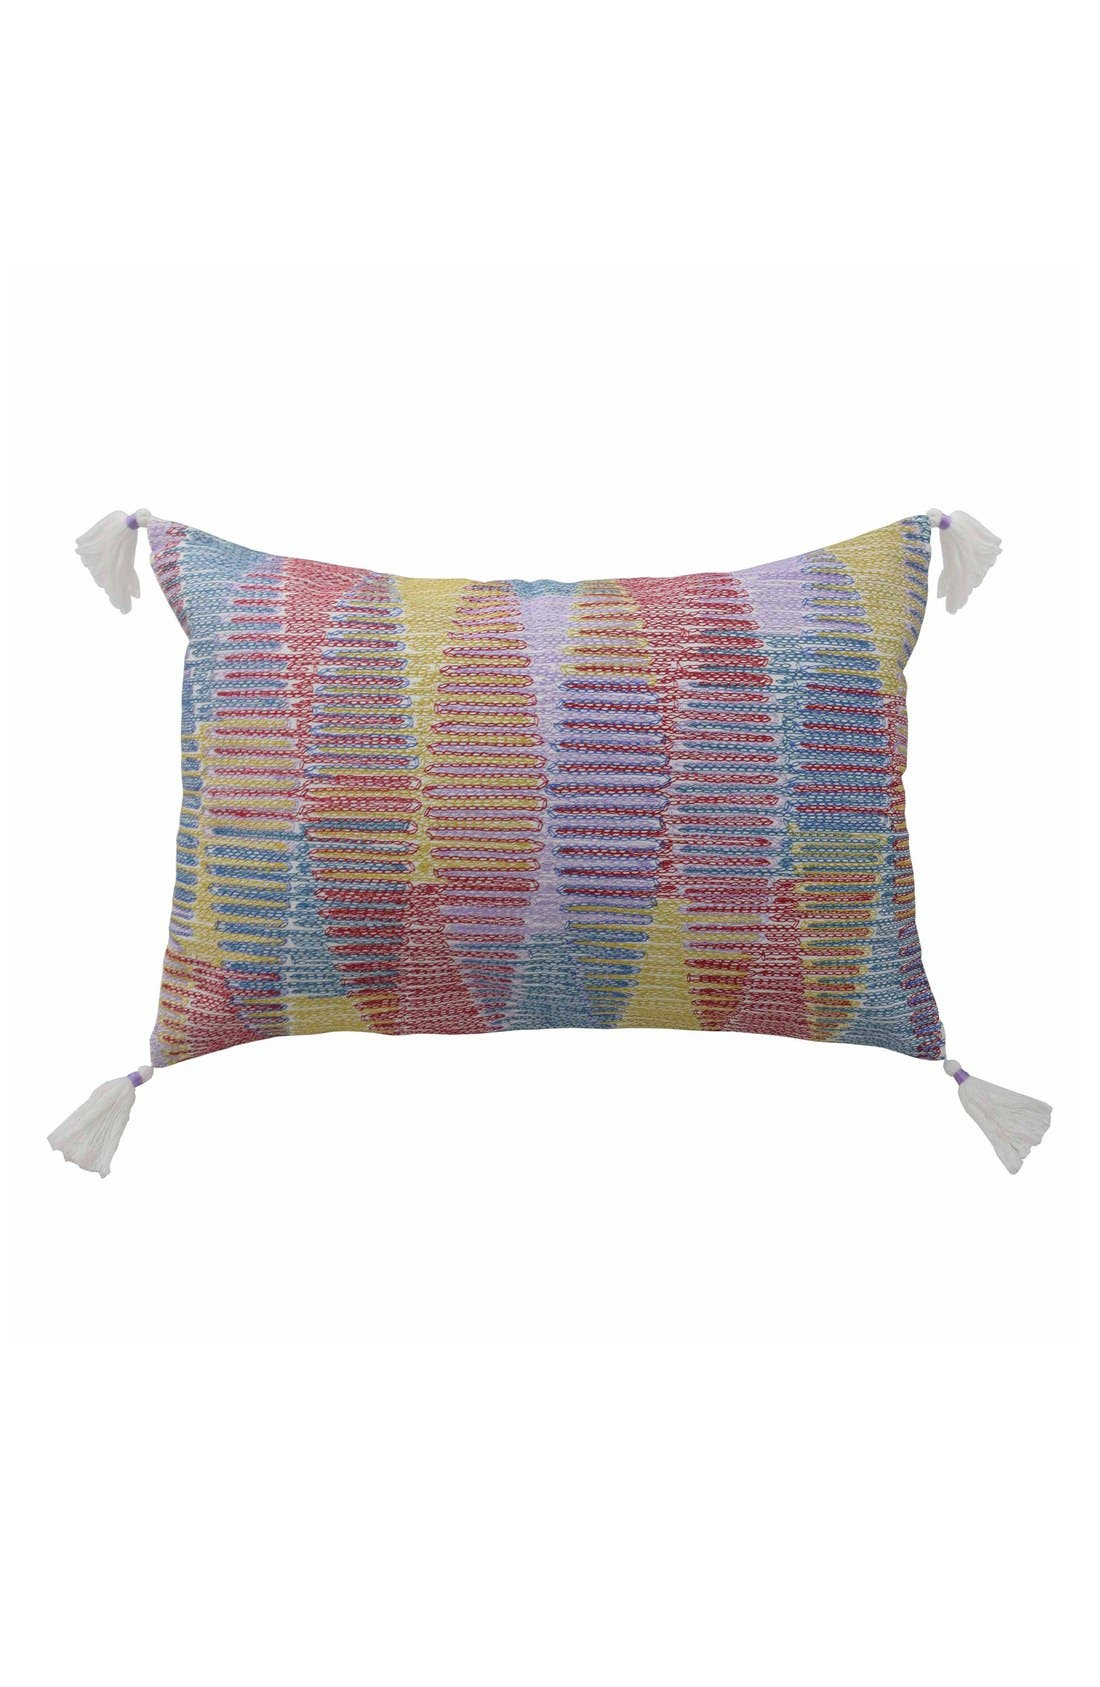 Alternate Image 1 Selected - Blissliving Home 'Tanzania Malika' Pillow